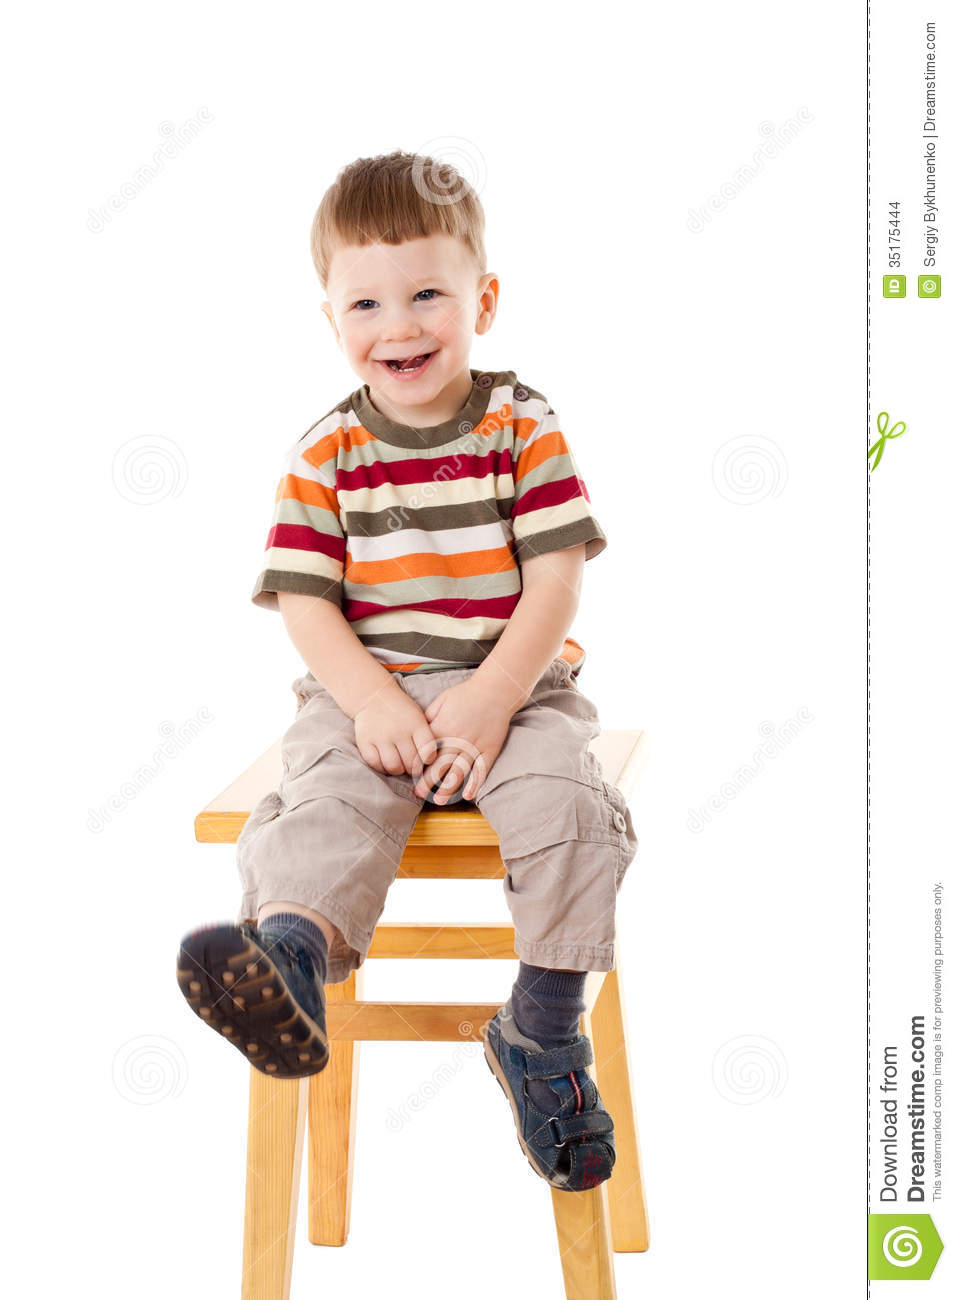 Boy Sitting On Stool Hot Girls Wallpaper